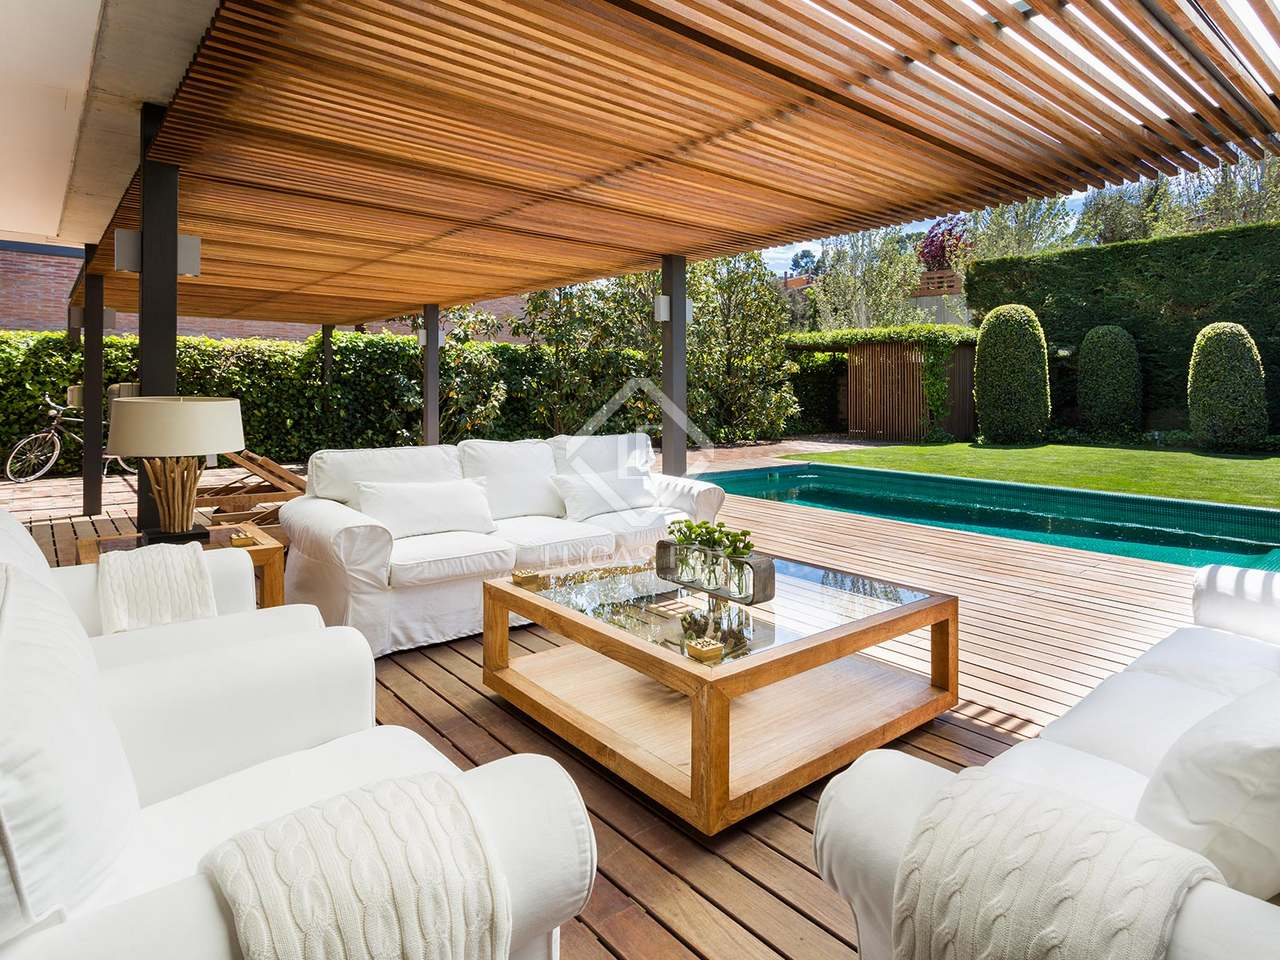 5 bedroom house with garden and pool to buy in sant cugat for Barcelona pool garden 4